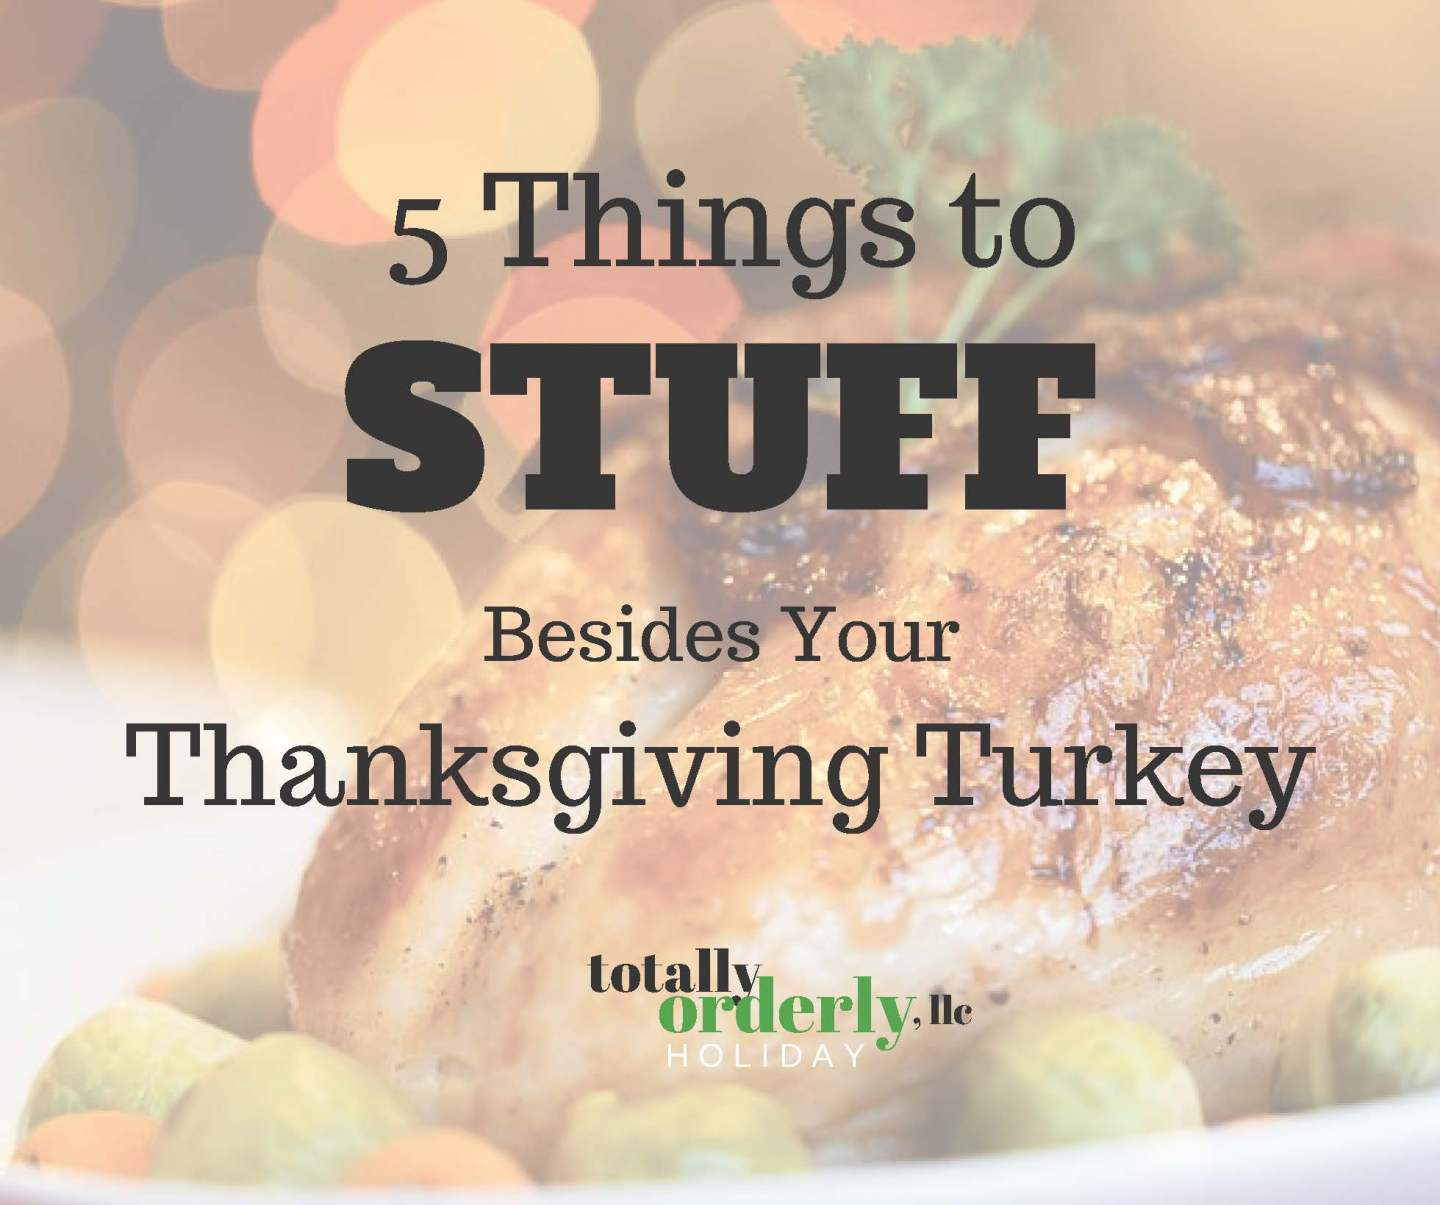 A picture of a thanksgiving turkey with the words 5 things to stuff besides your turkey